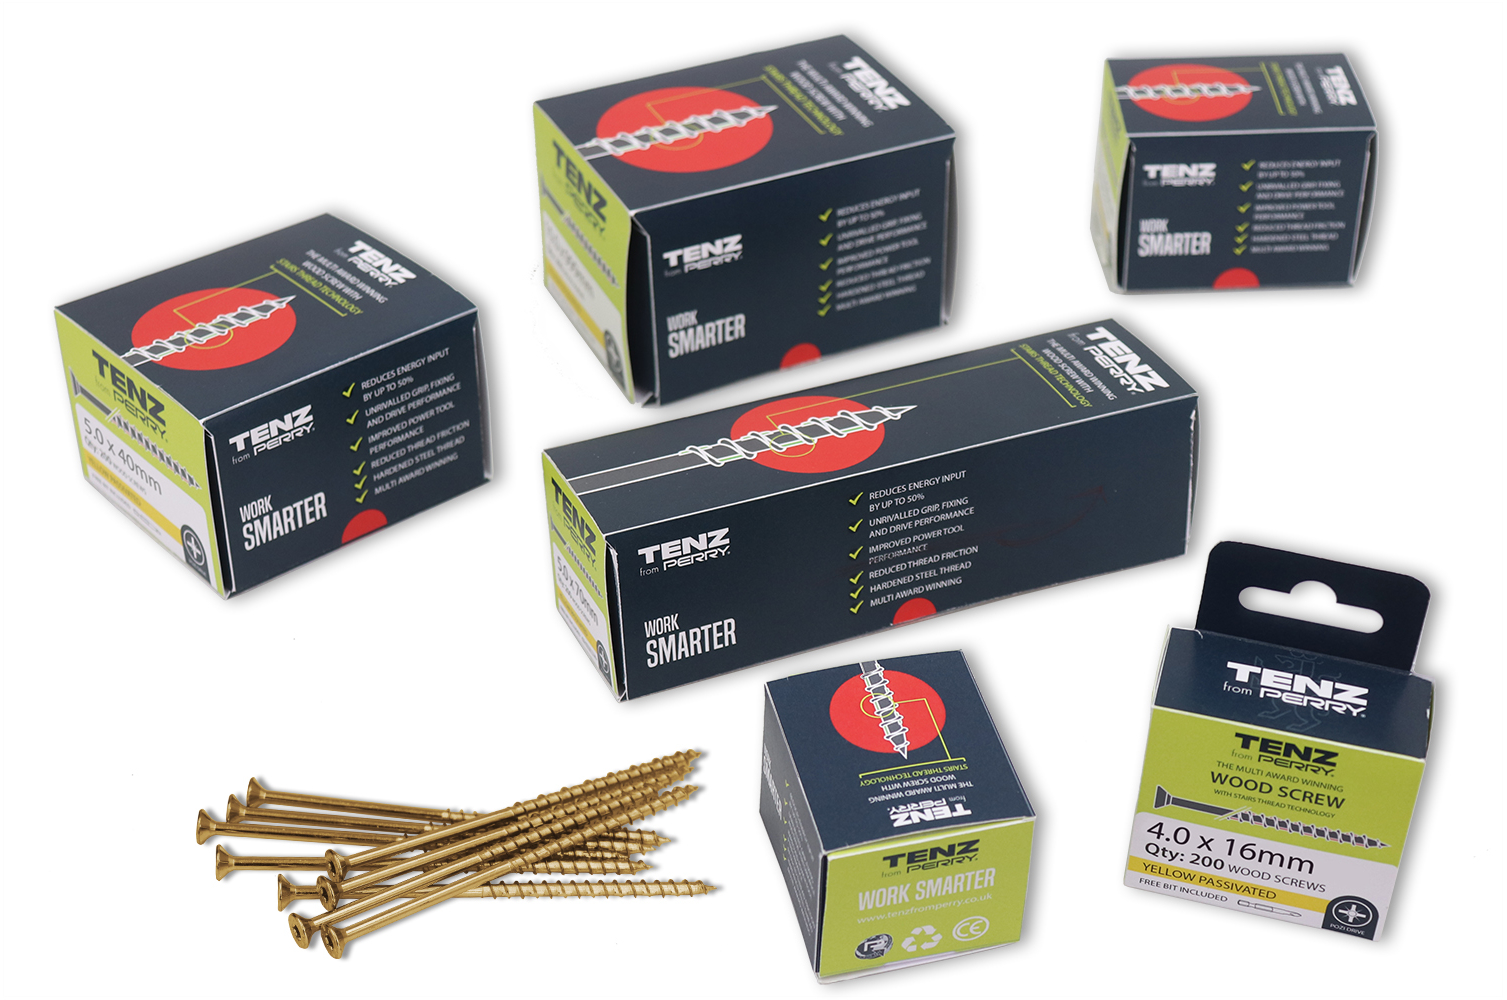 wood screw and general hardware